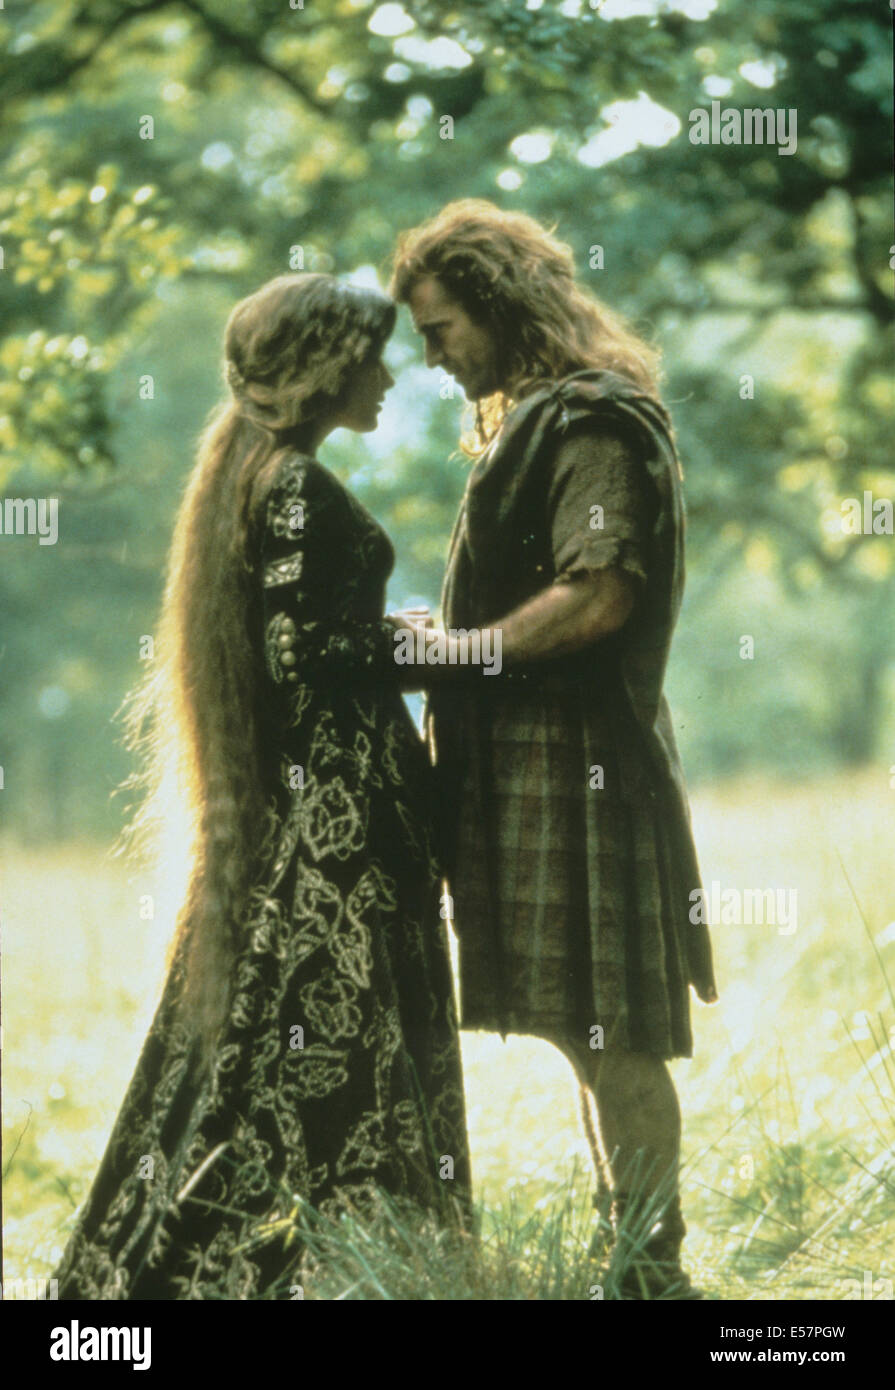 BRAVEHEART 1995 Icon Entertainment fllm with Mel Gibson and Sophie Marceau - Stock Image